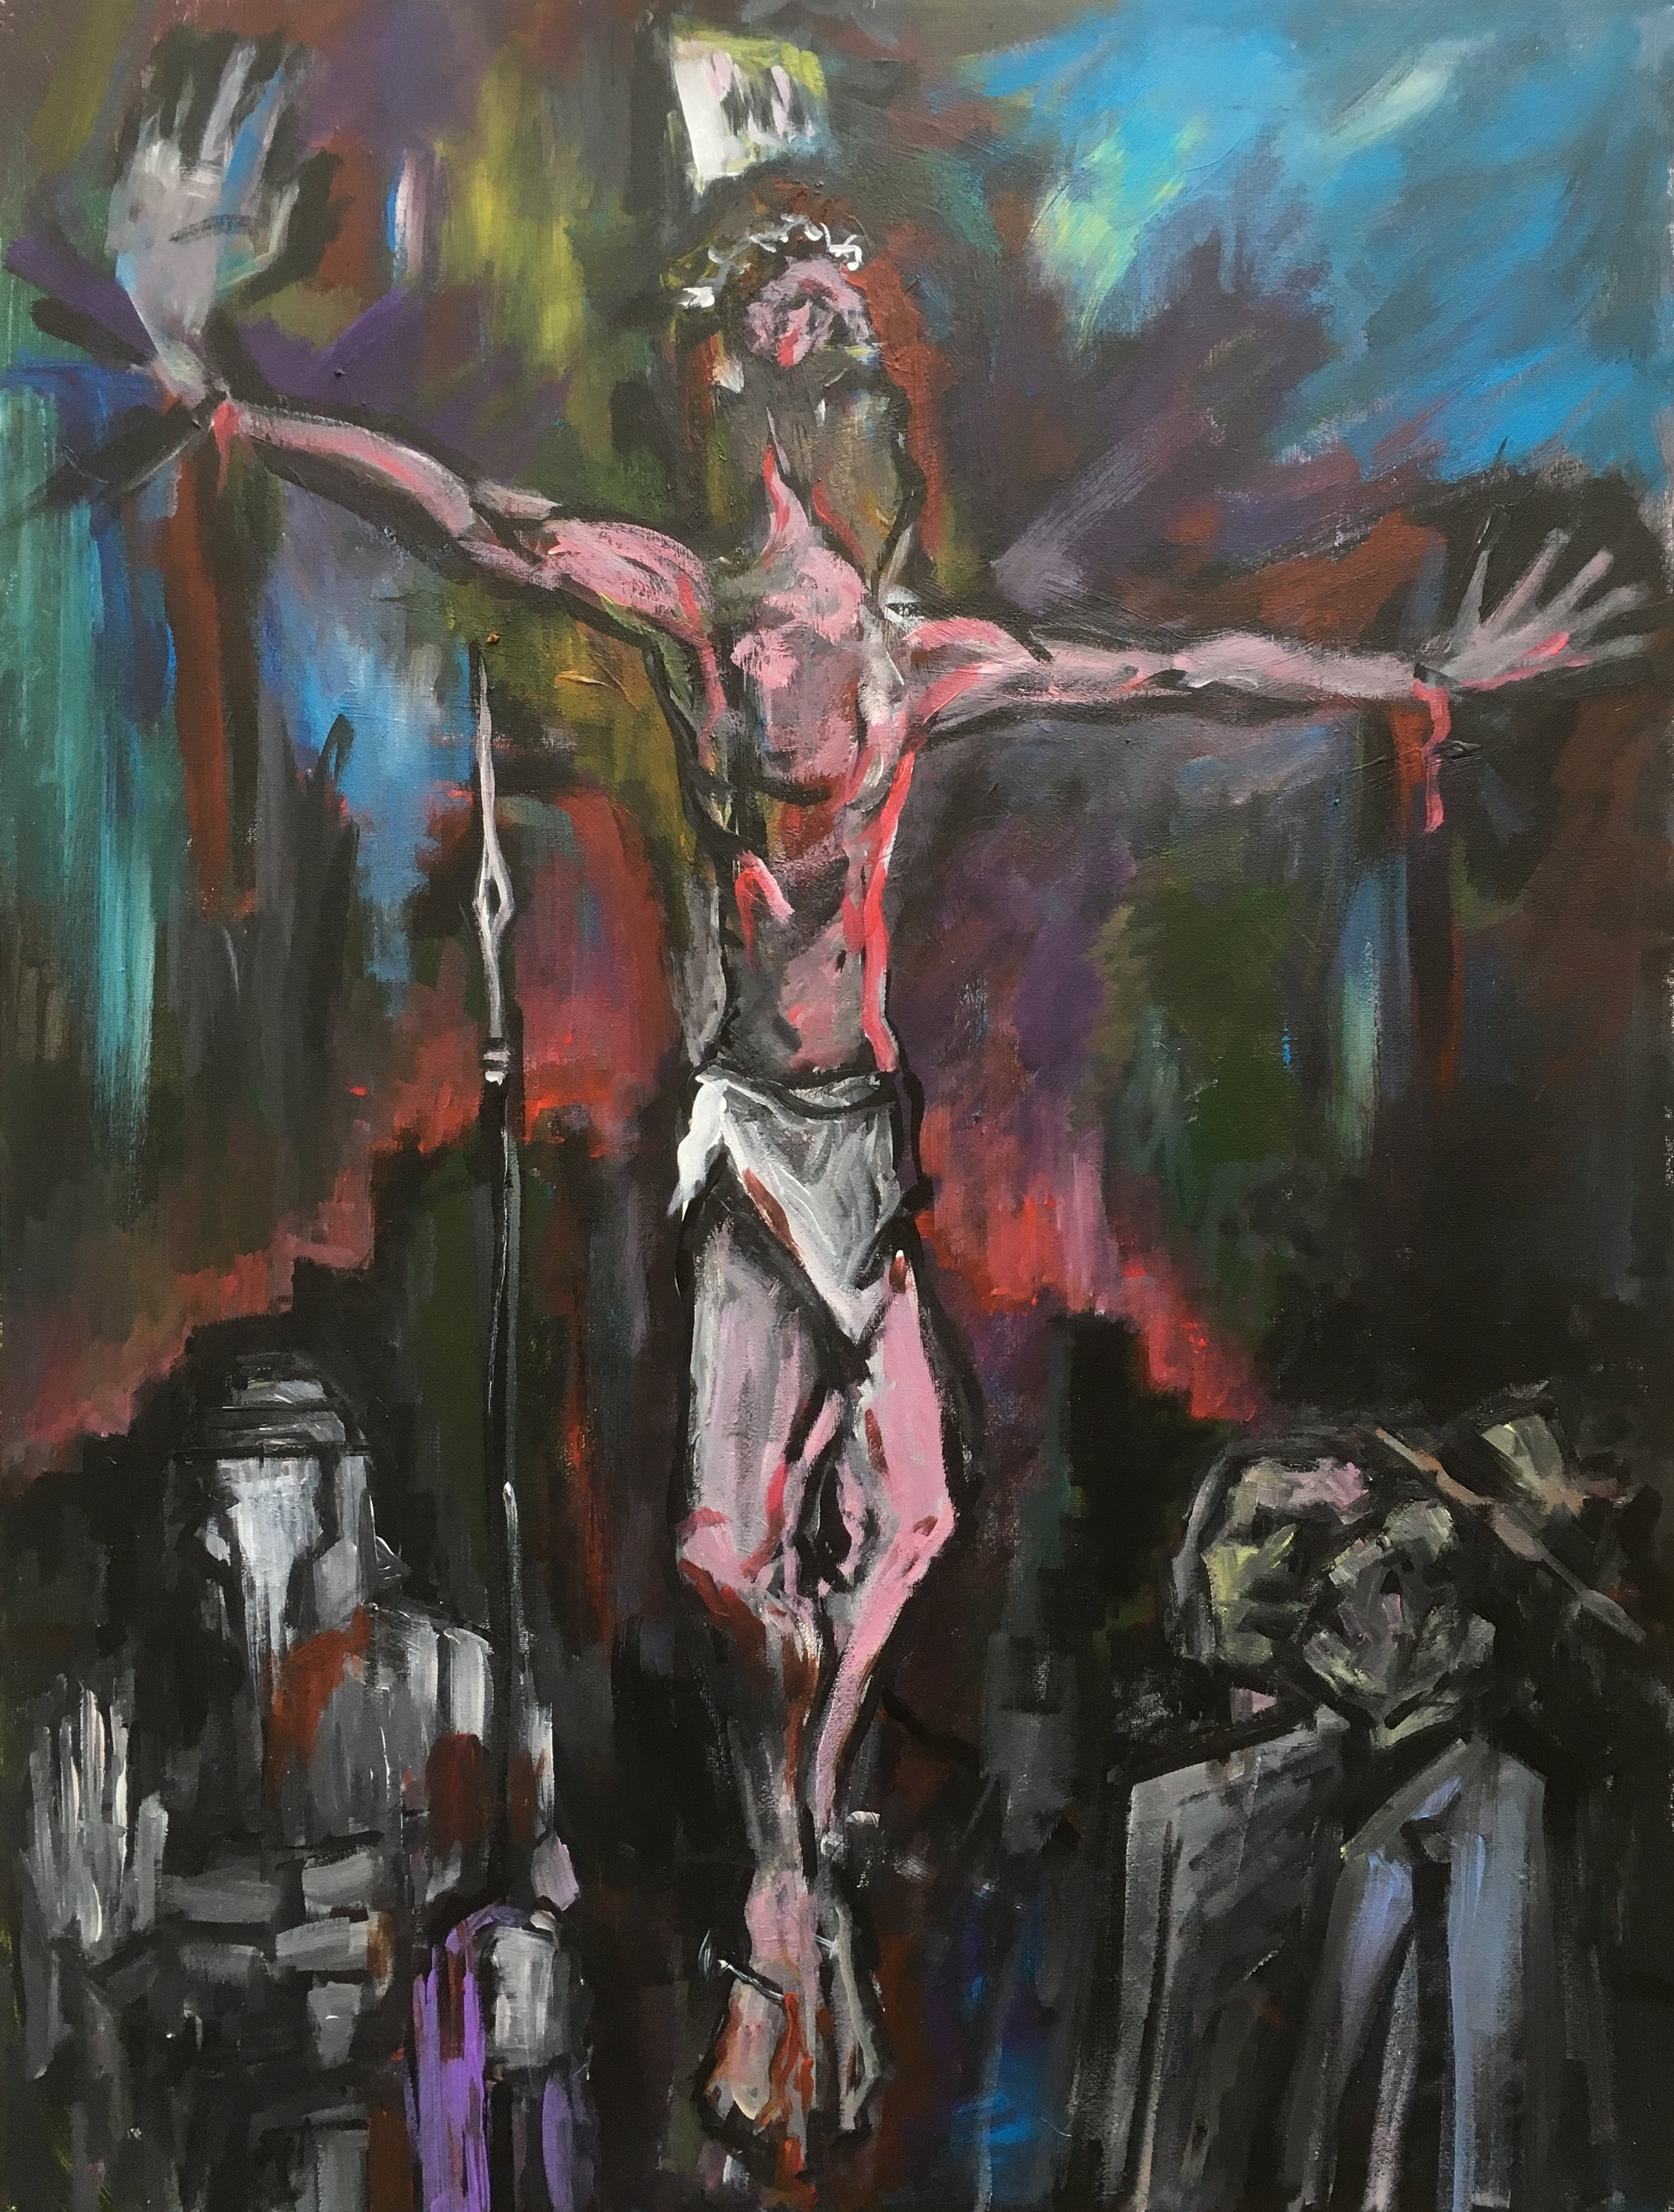 Christ on the cross  60 by 80 by 1.5cm  acrylic on canvas  £500  unframed